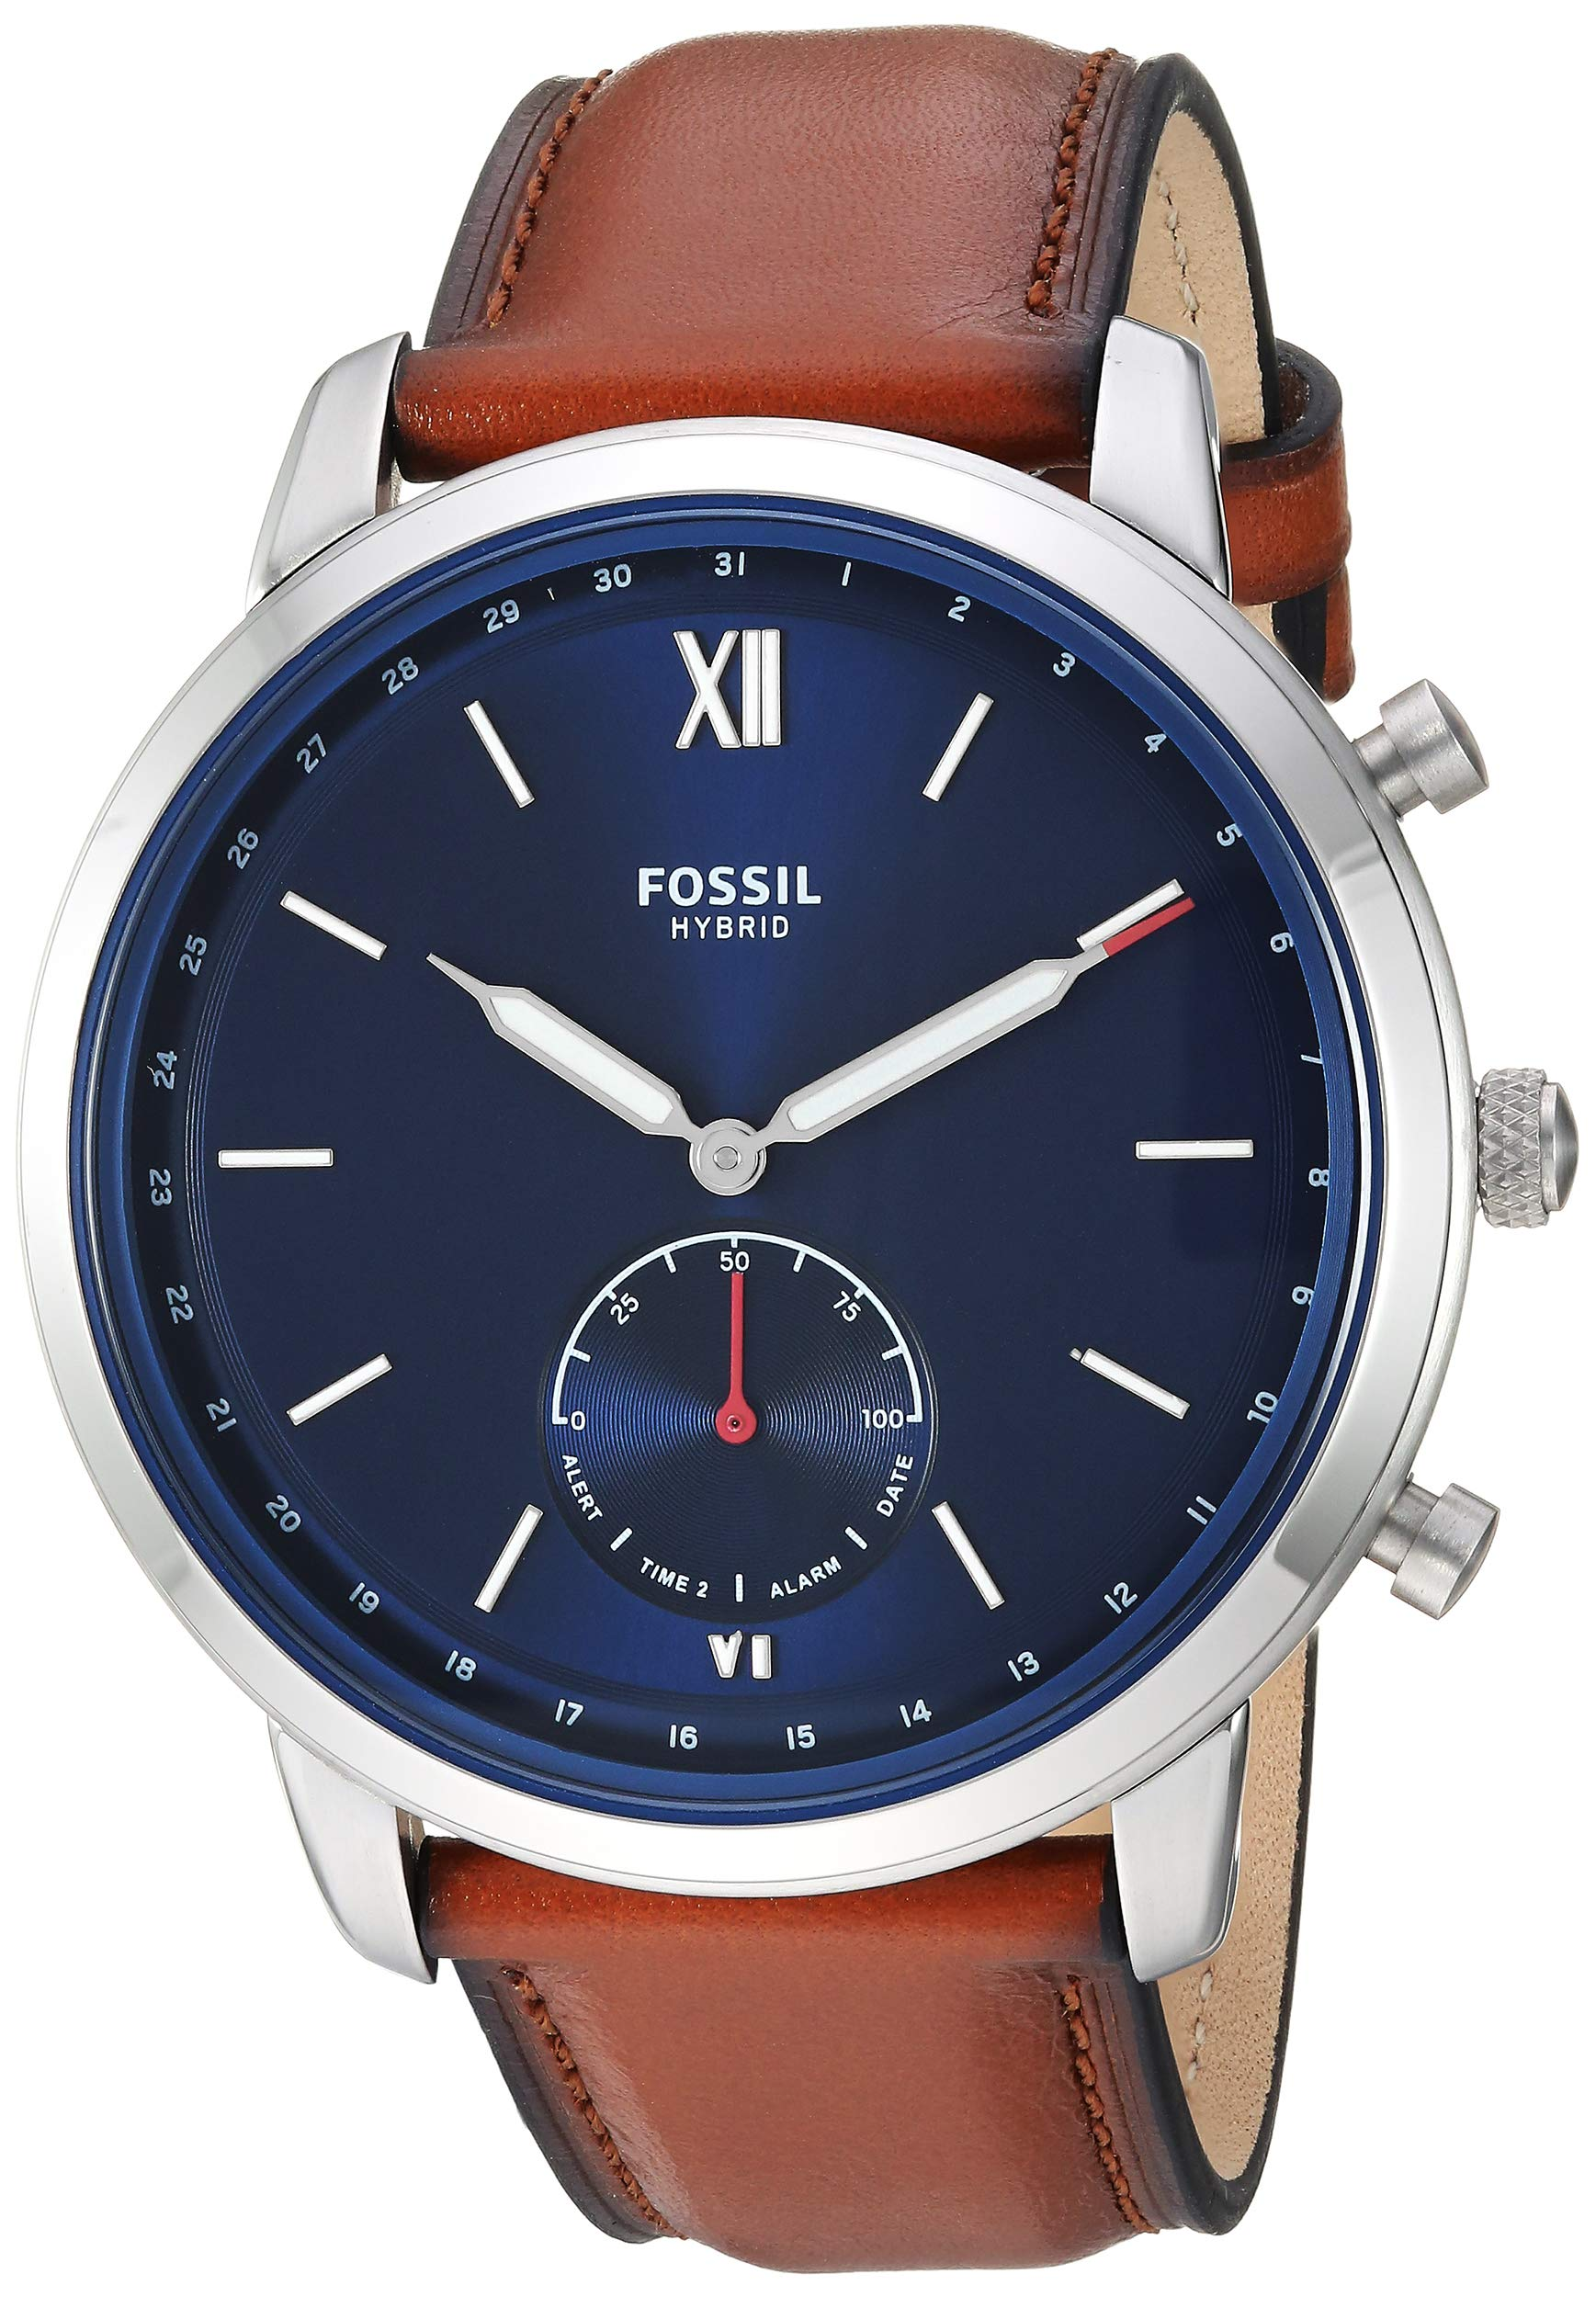 Fossil Men's Hybrid Smartwatch Stainless Steel Watch with Leather Strap, Brown, 20.8 (Model: FTW1178)